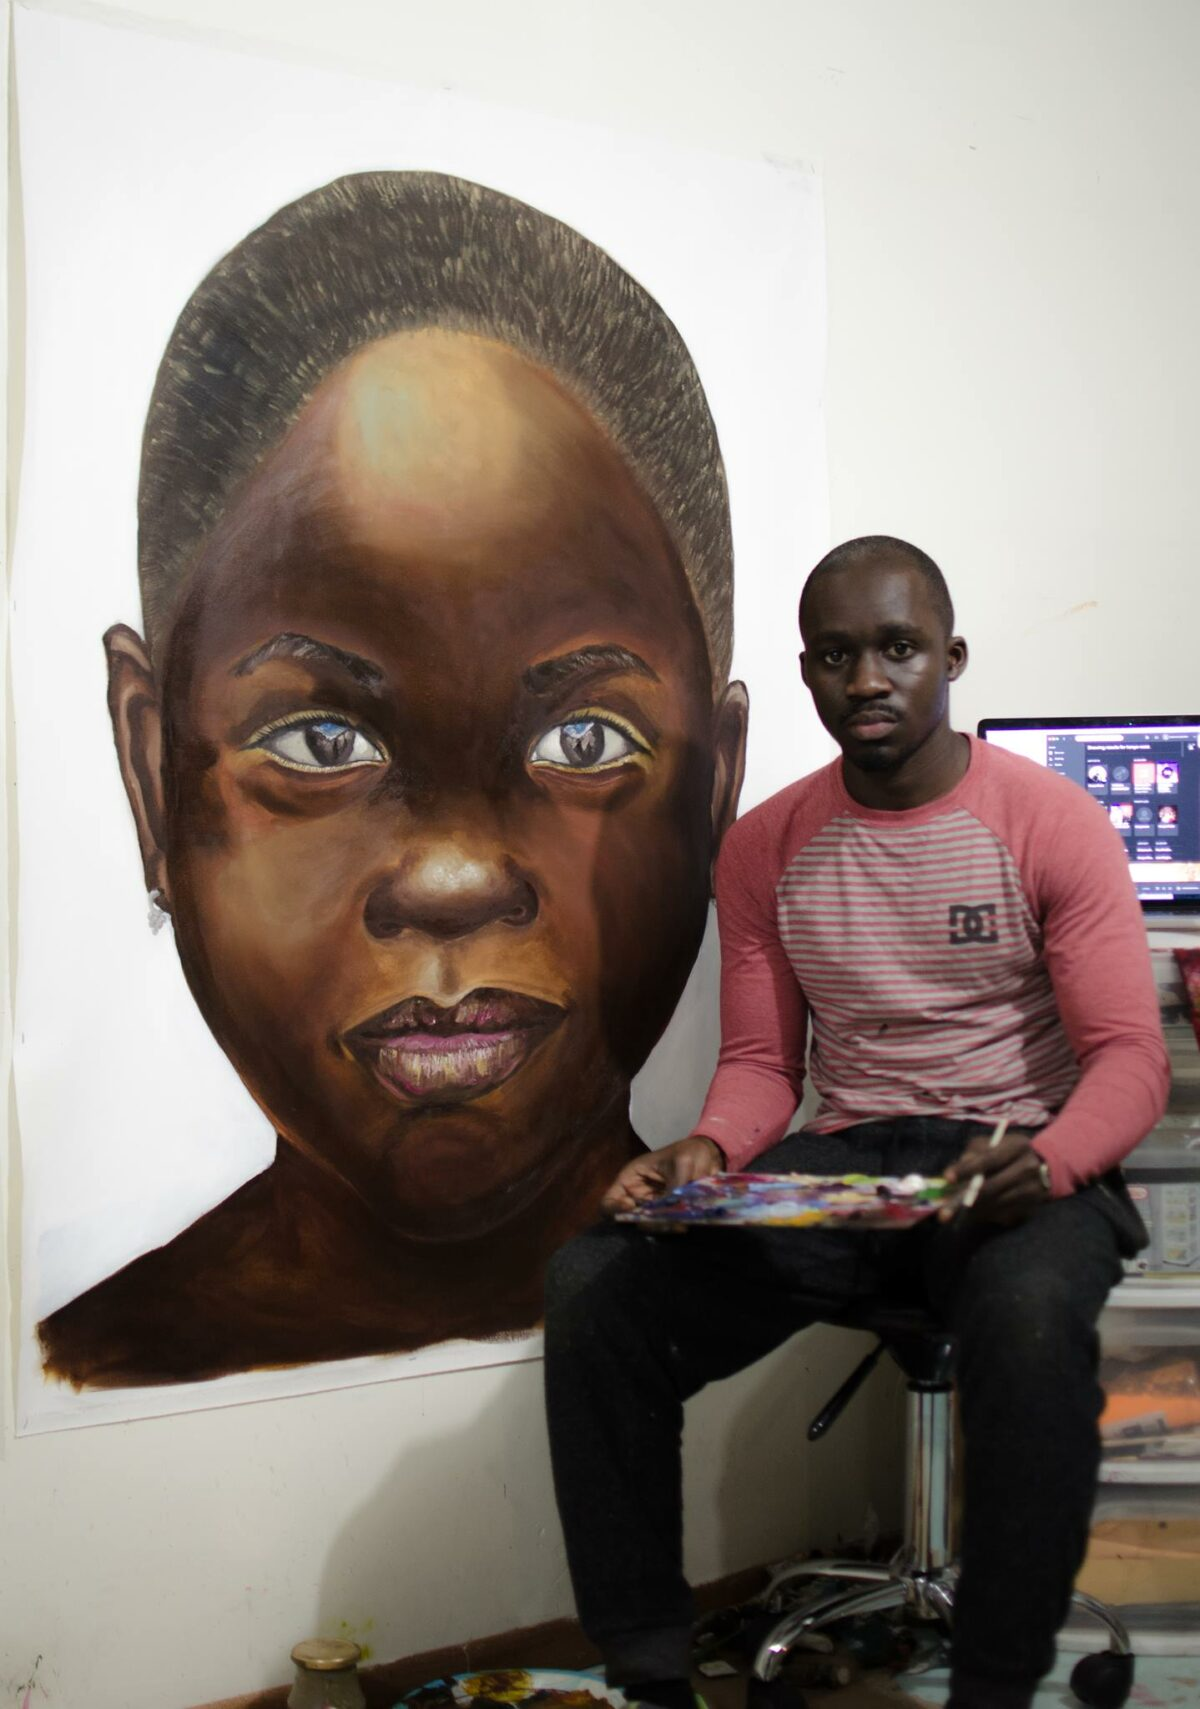 Painting our stories: An interview with Solomon Adufa